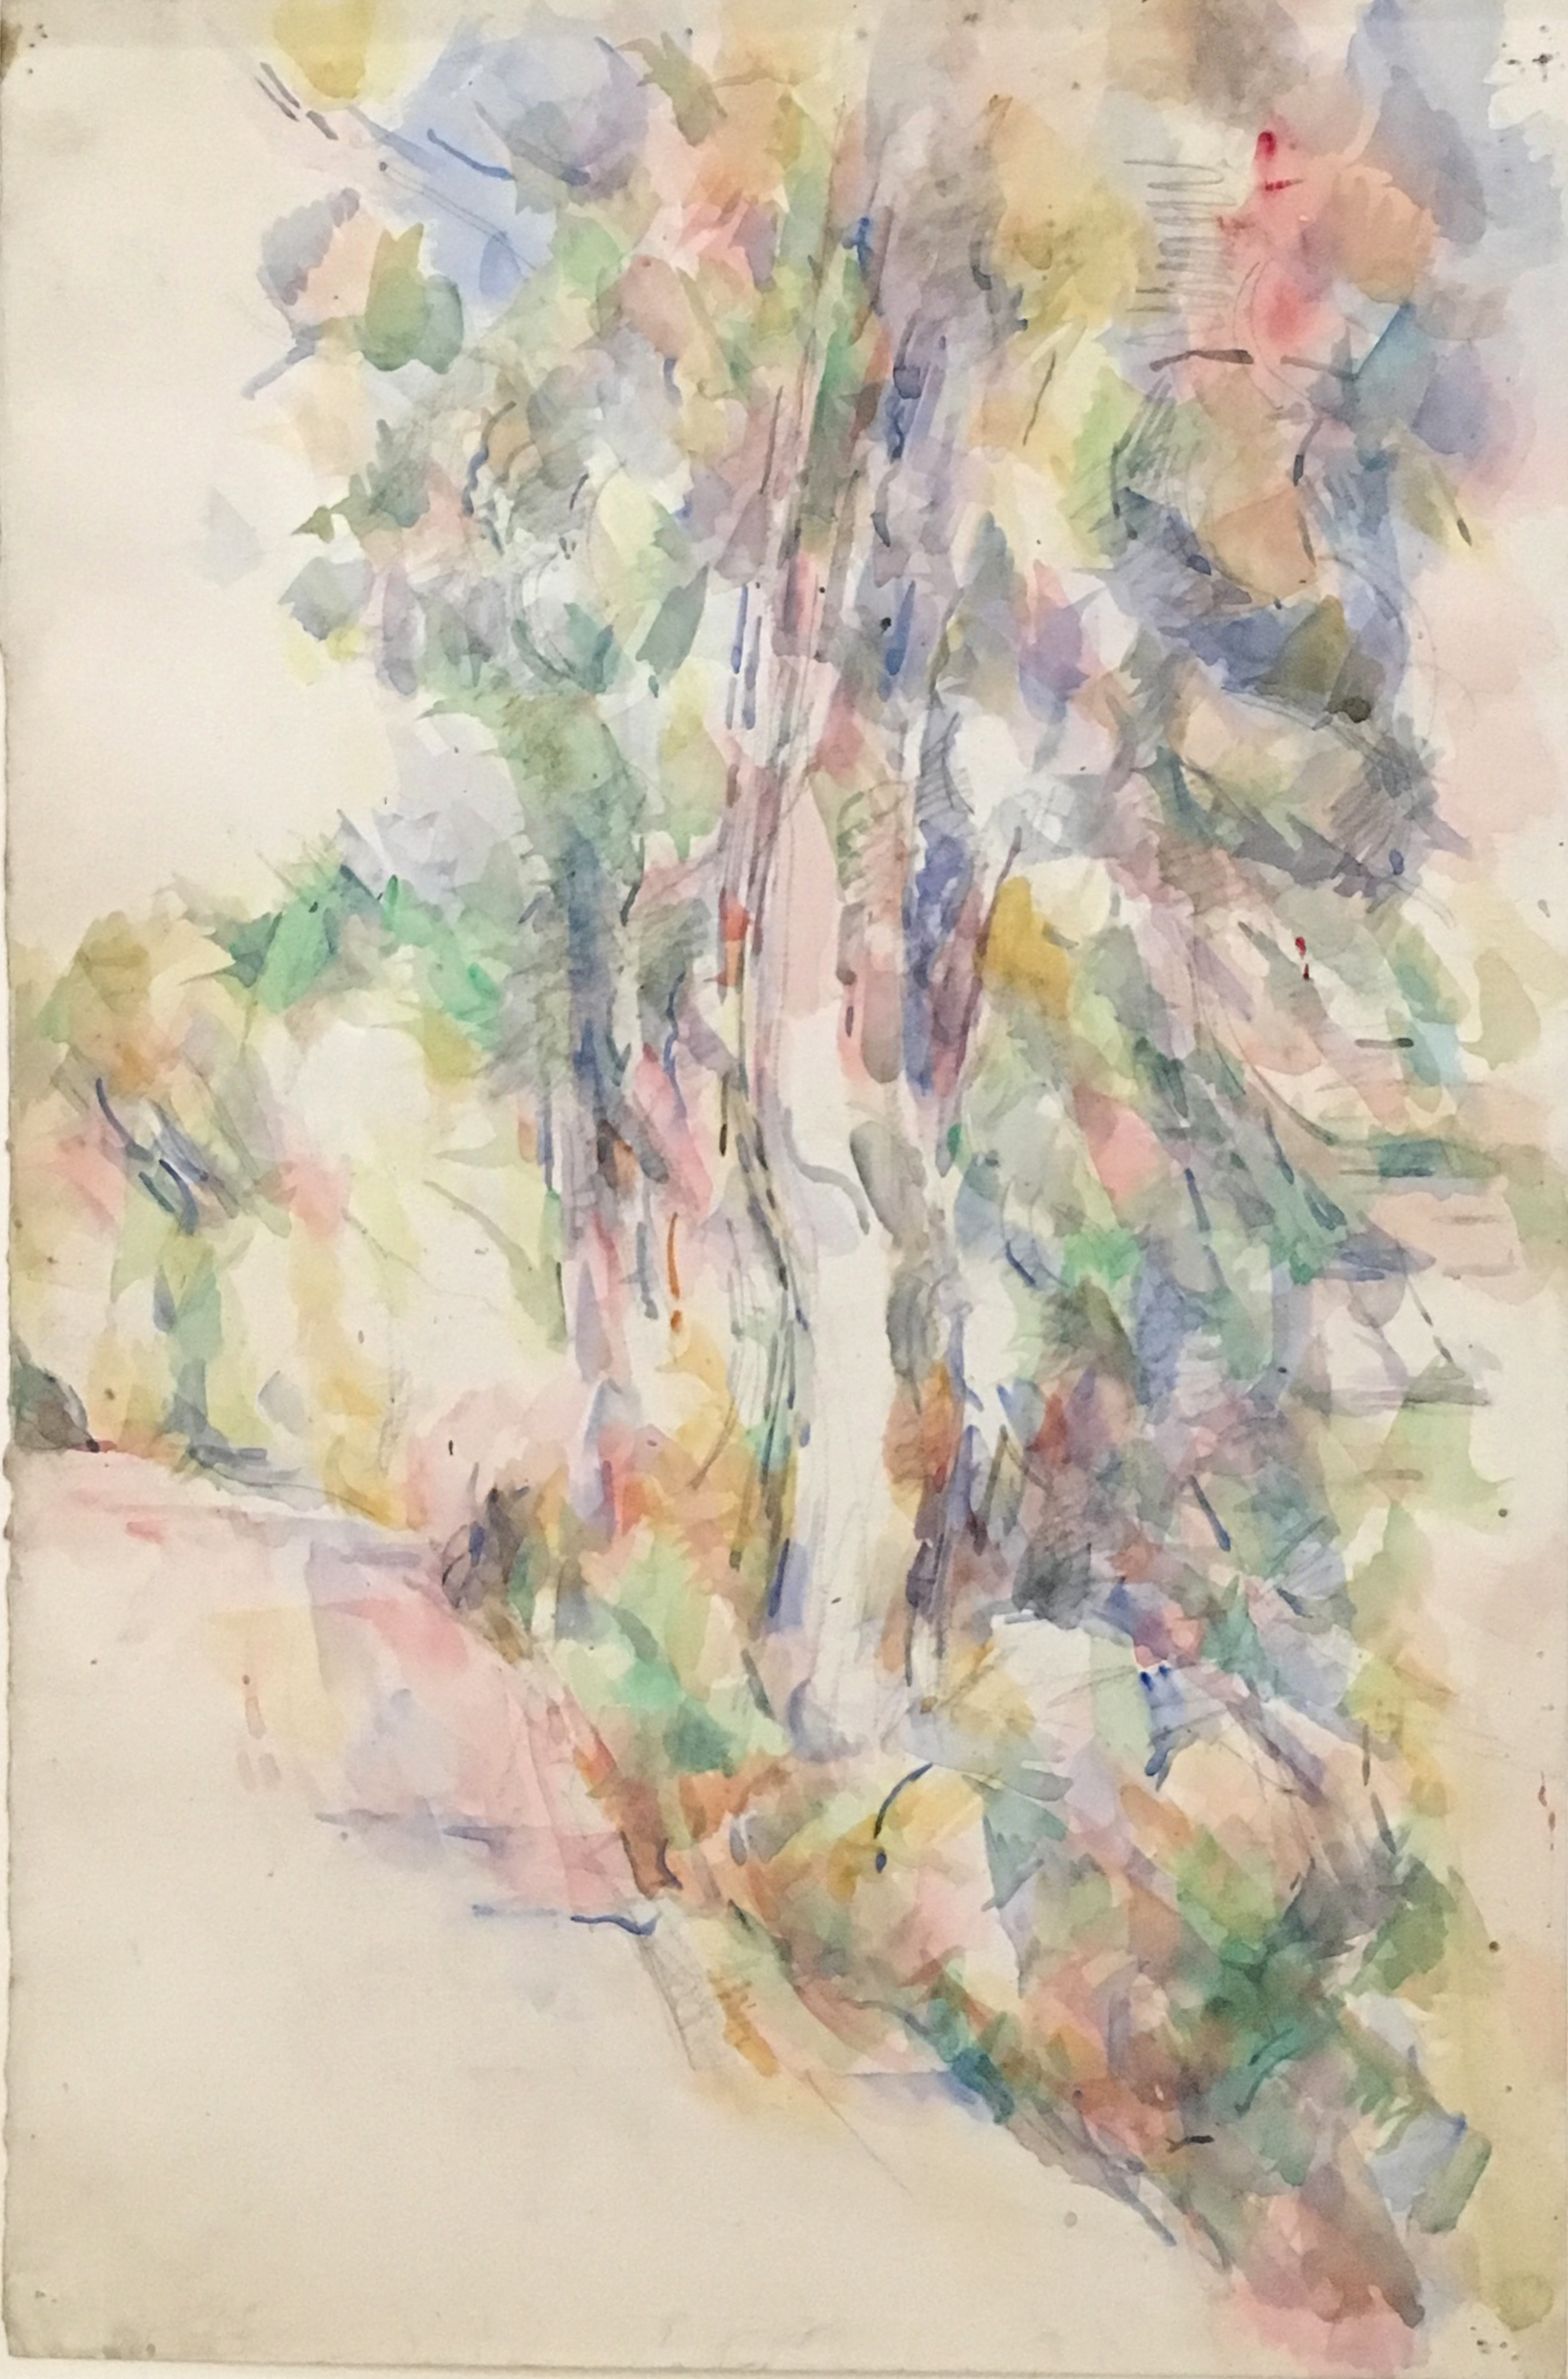 Road with Trees on an Embankment, c. 1904, pencil and watercolour on paper, P. Cézanne, Fondation Beyeler, Basel